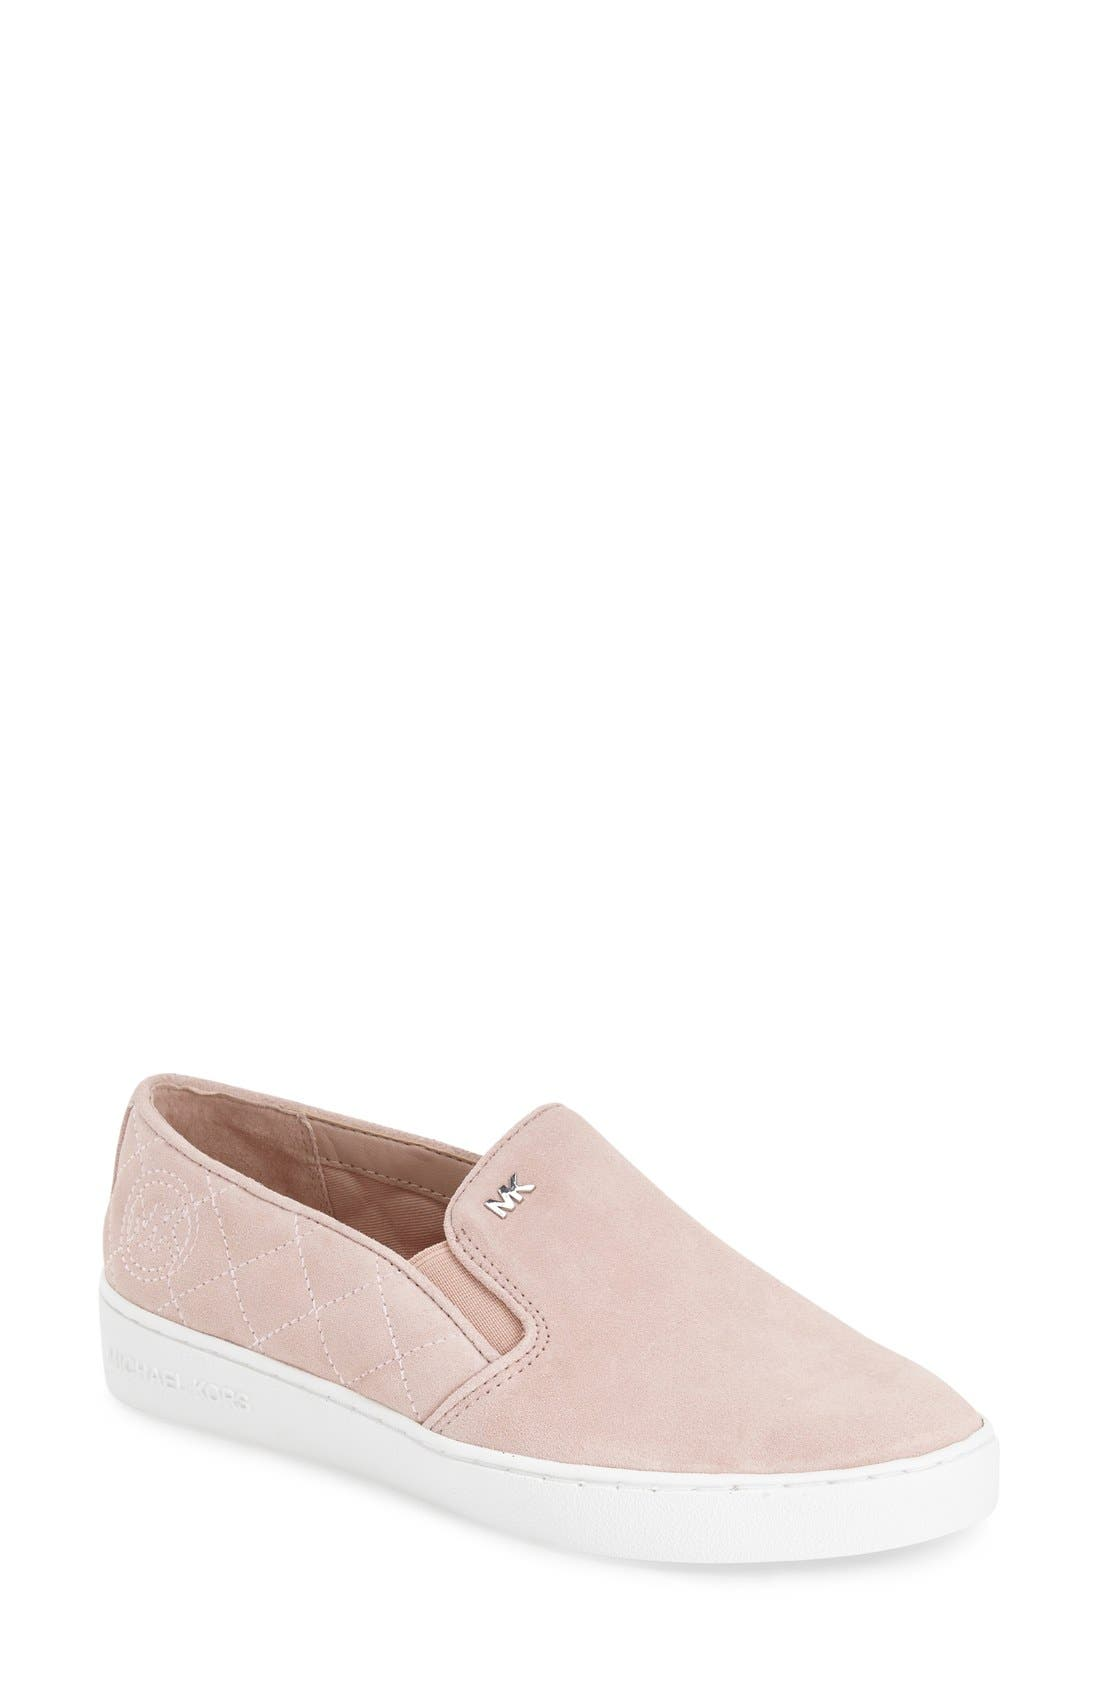 Keaton Slip-On Sneaker,                             Main thumbnail 24, color,